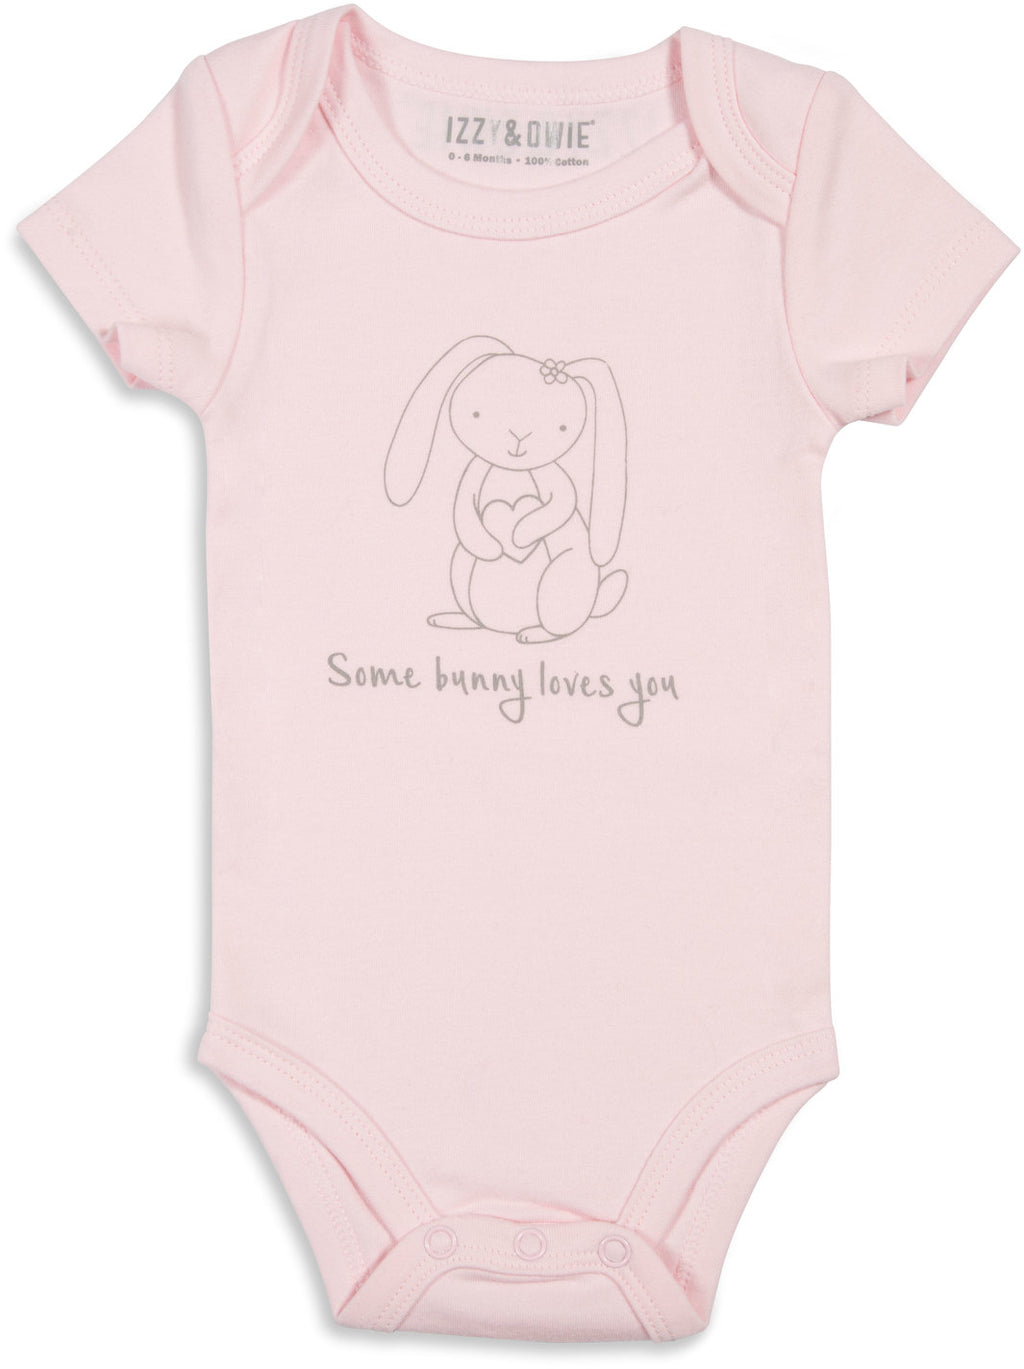 Soft Pink Bunny Some Bunny Loves You 0-6 Months Onesie Baby Onesie Izzy & Owie - GigglesGear.com